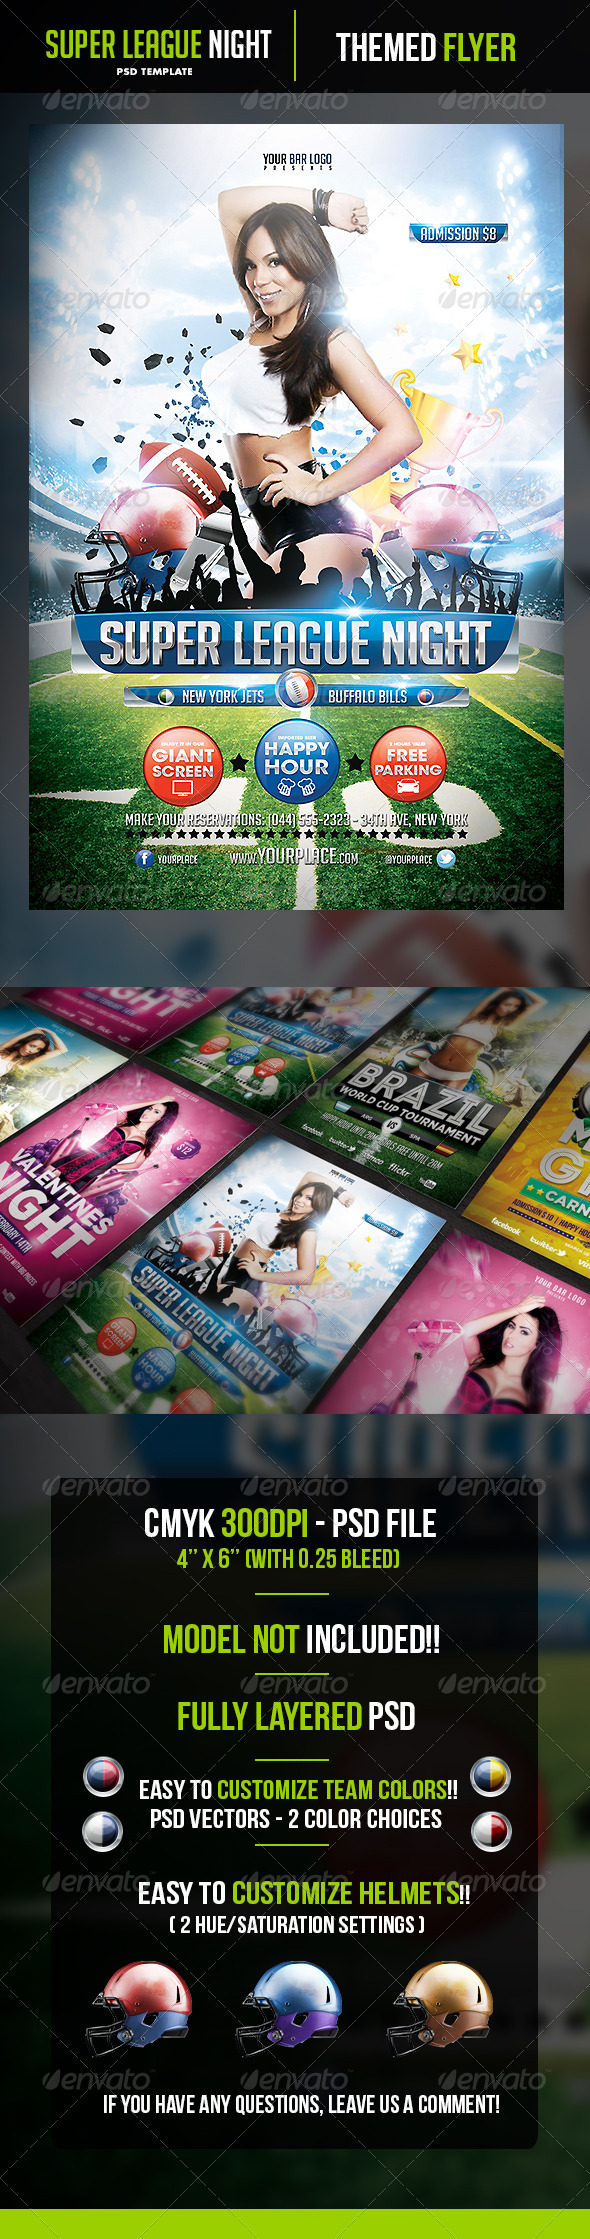 Super League Night Flyer Template - Sports Events